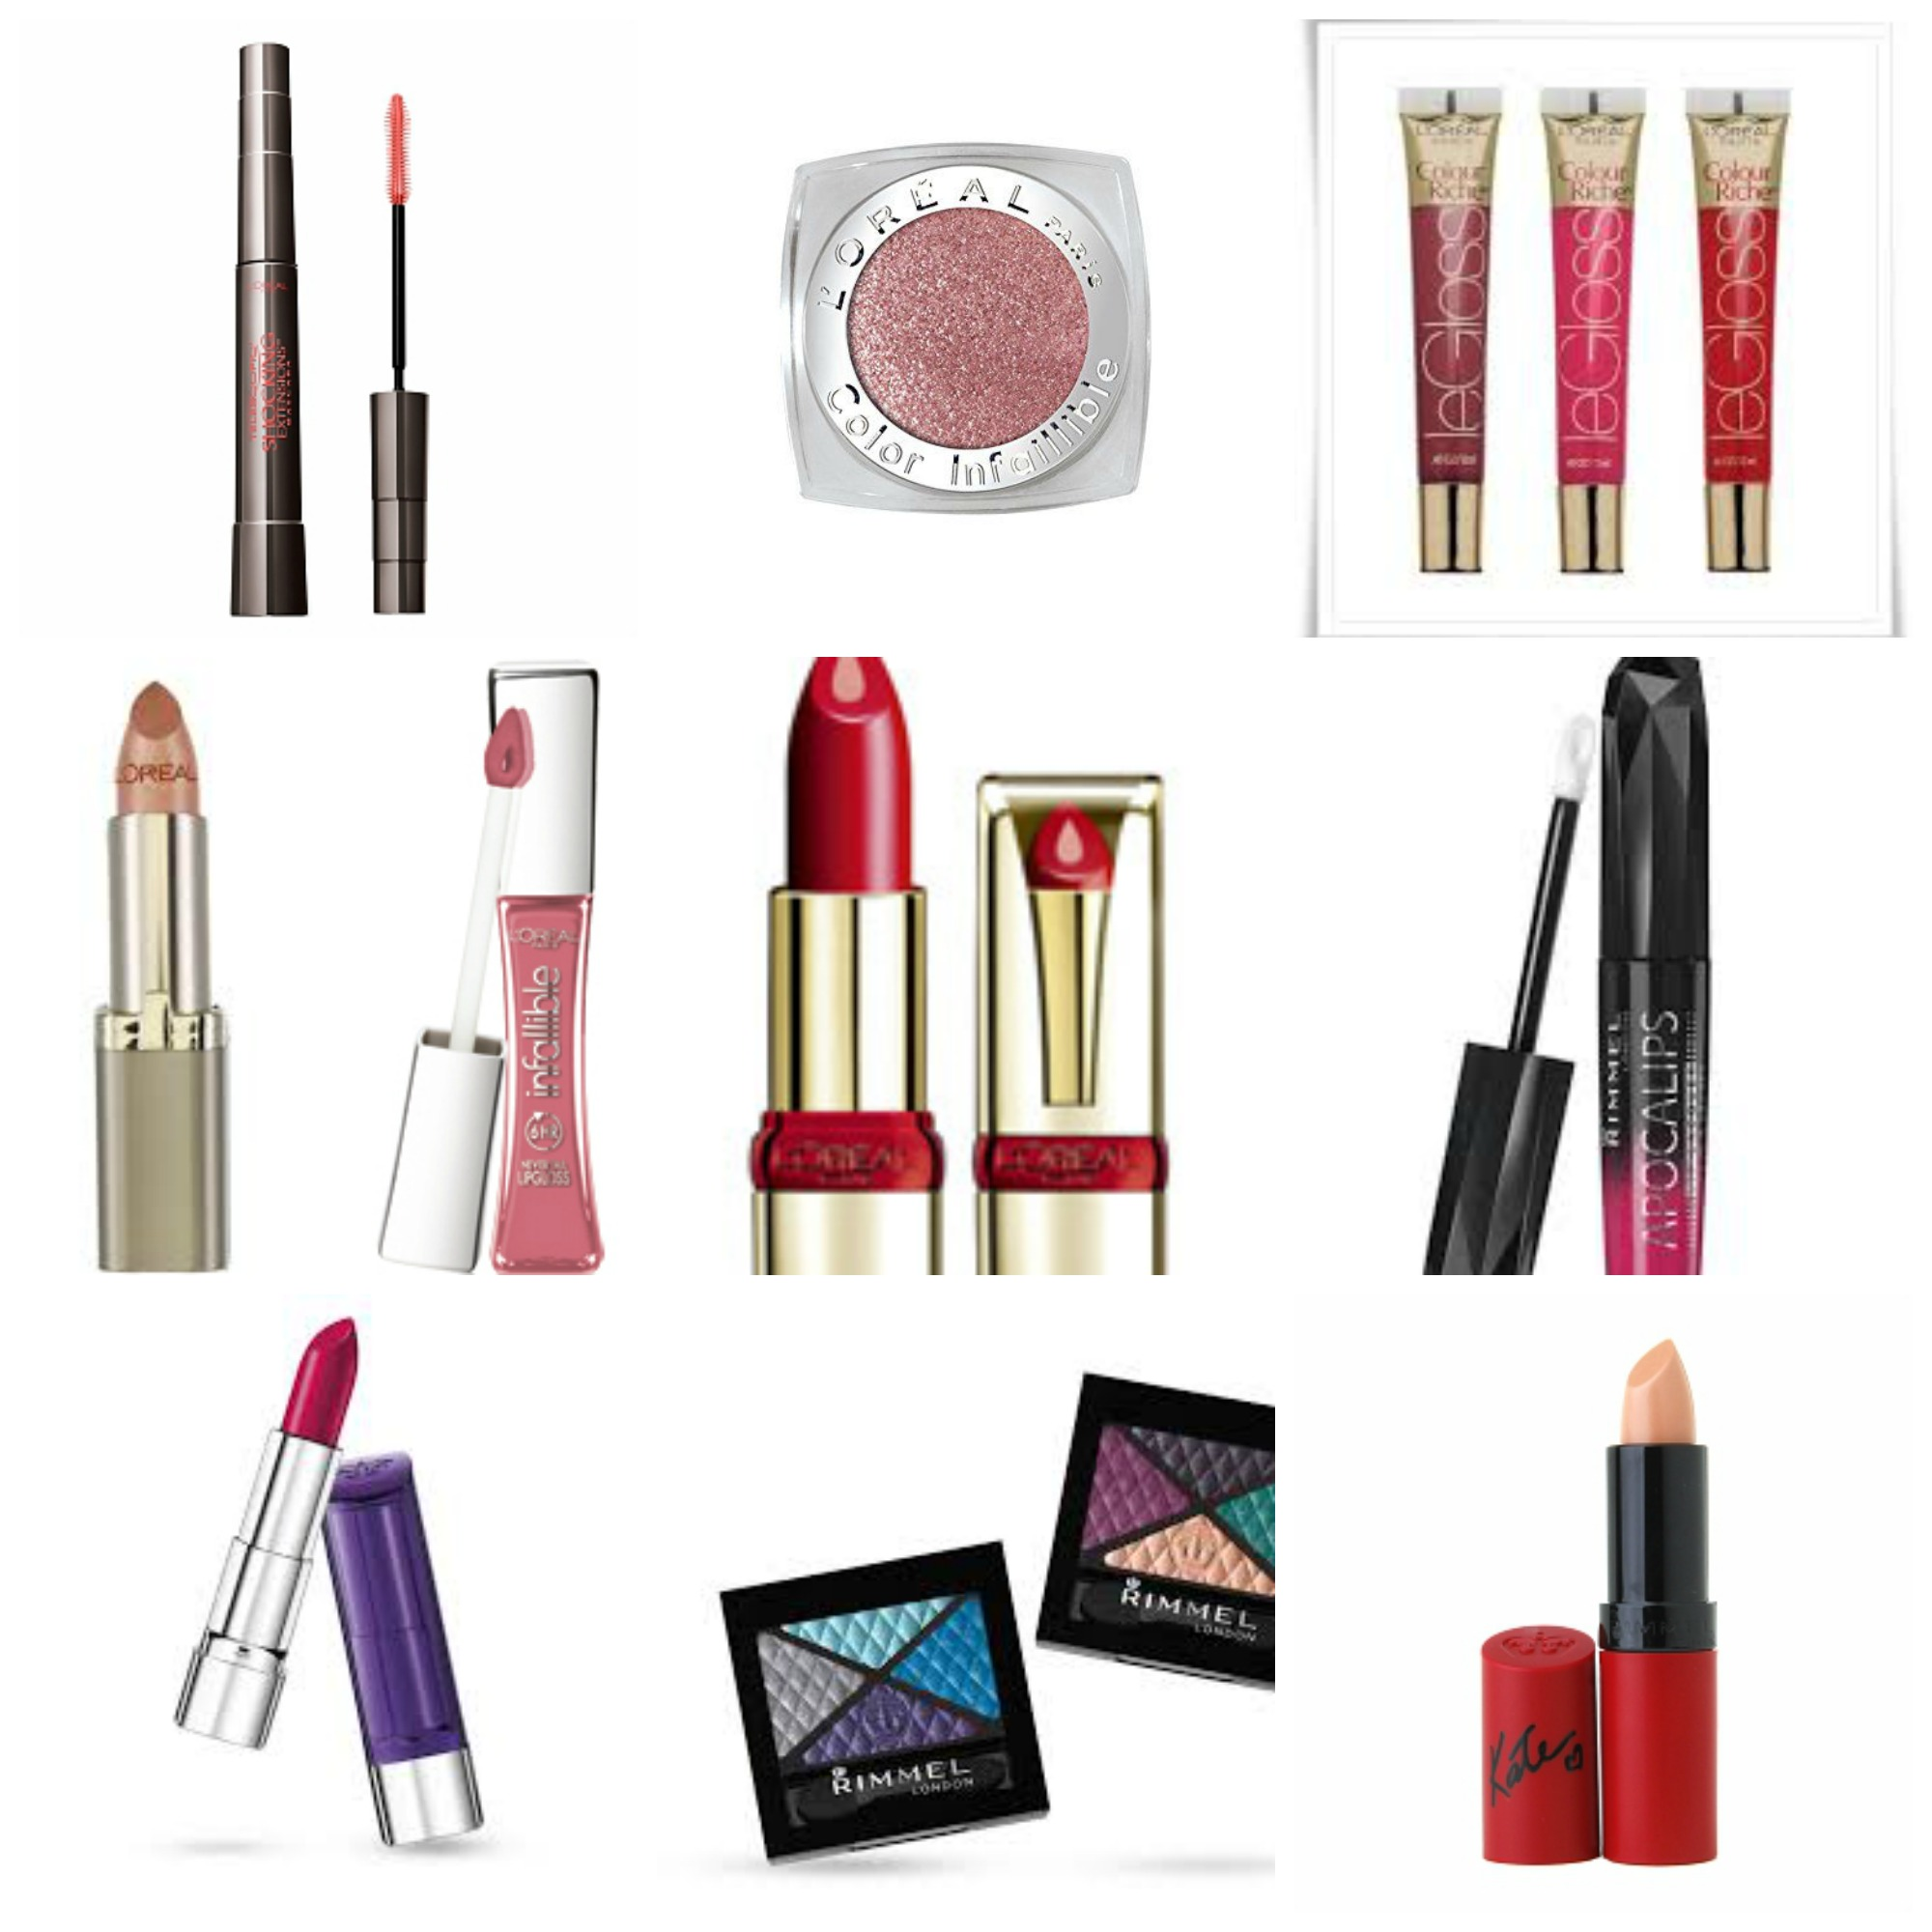 Get Them Before They're Gone – Drugstore Products On Their Way Out